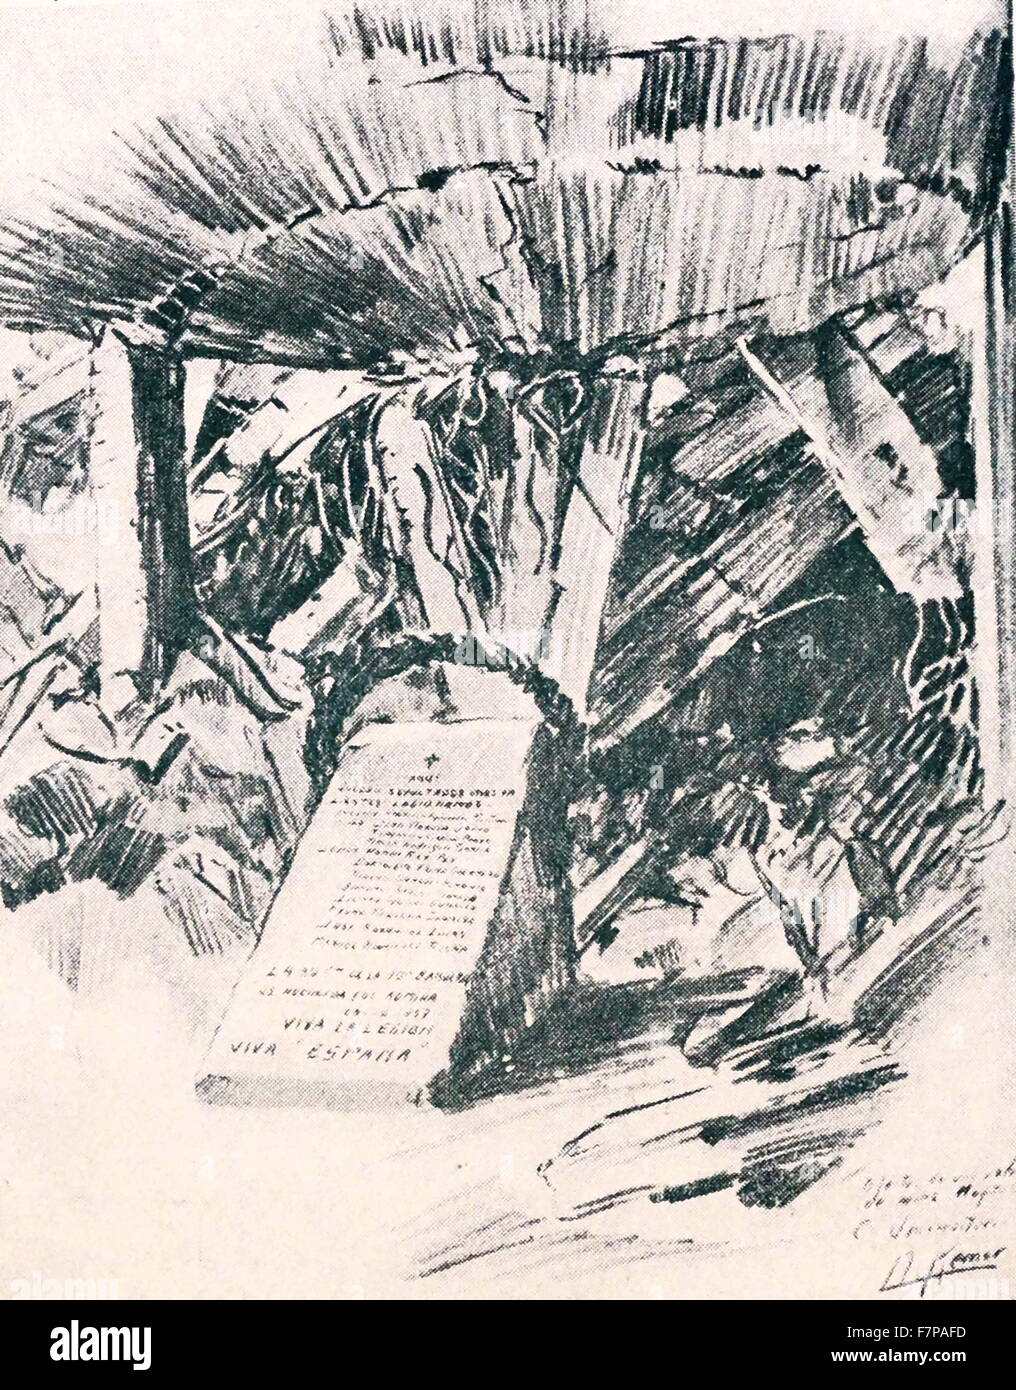 memorial at the Clinical Hospital destroyed by a shell in the siege of Madrid 1938. Drawn by Kemer, during the Spanish - Stock Image